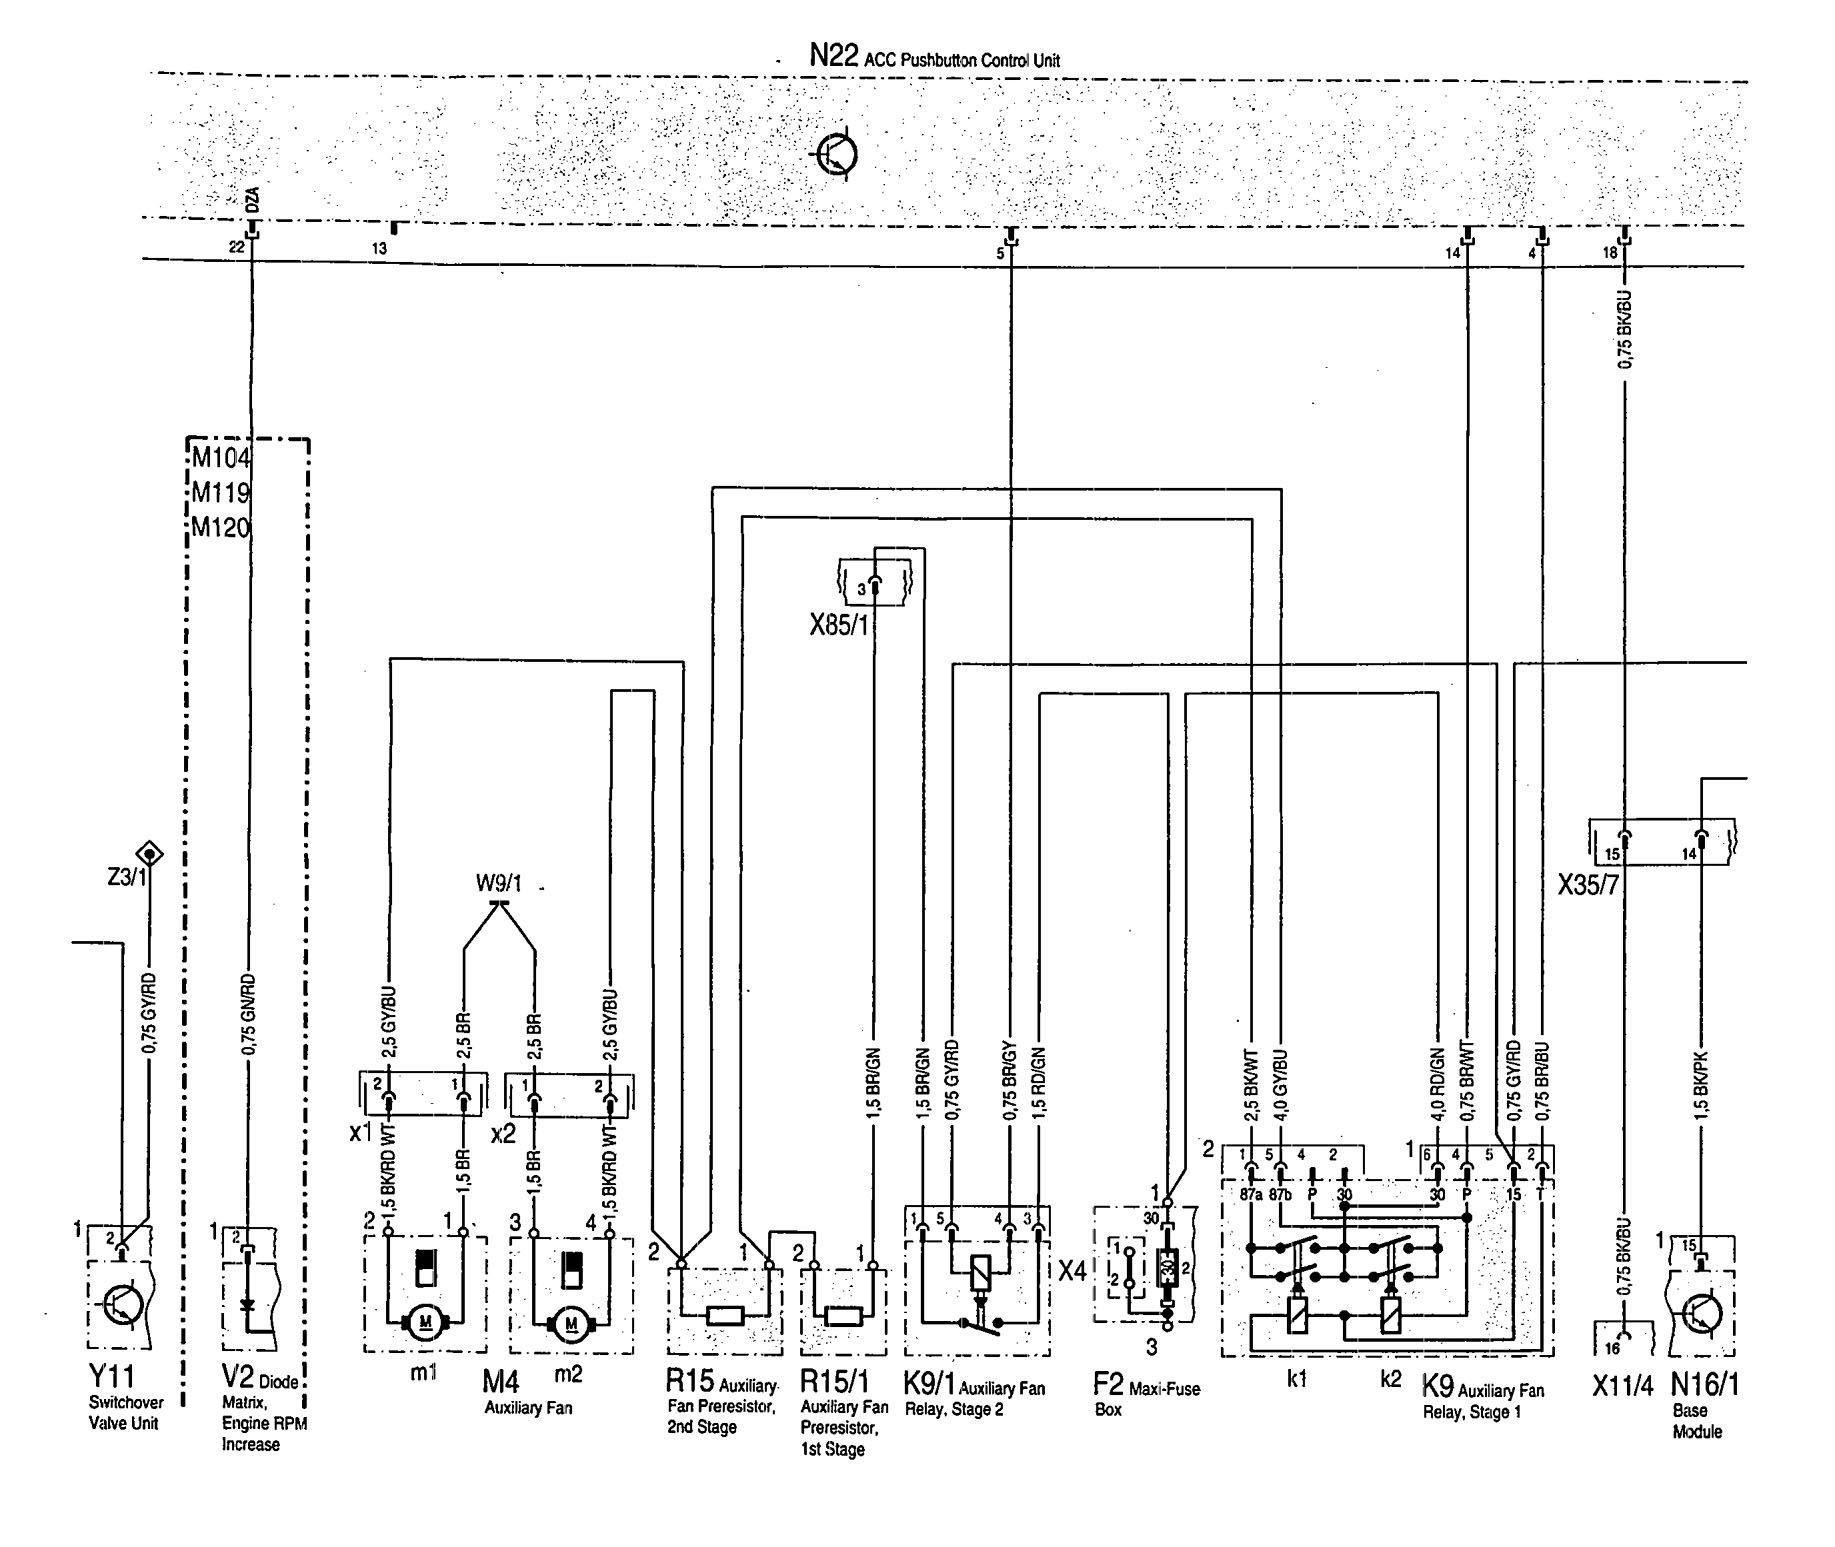 mercedes-benz 300sd (1992 - 1993) - wiring diagrams - hvac control -  carknowledge.info  carknowledge.info